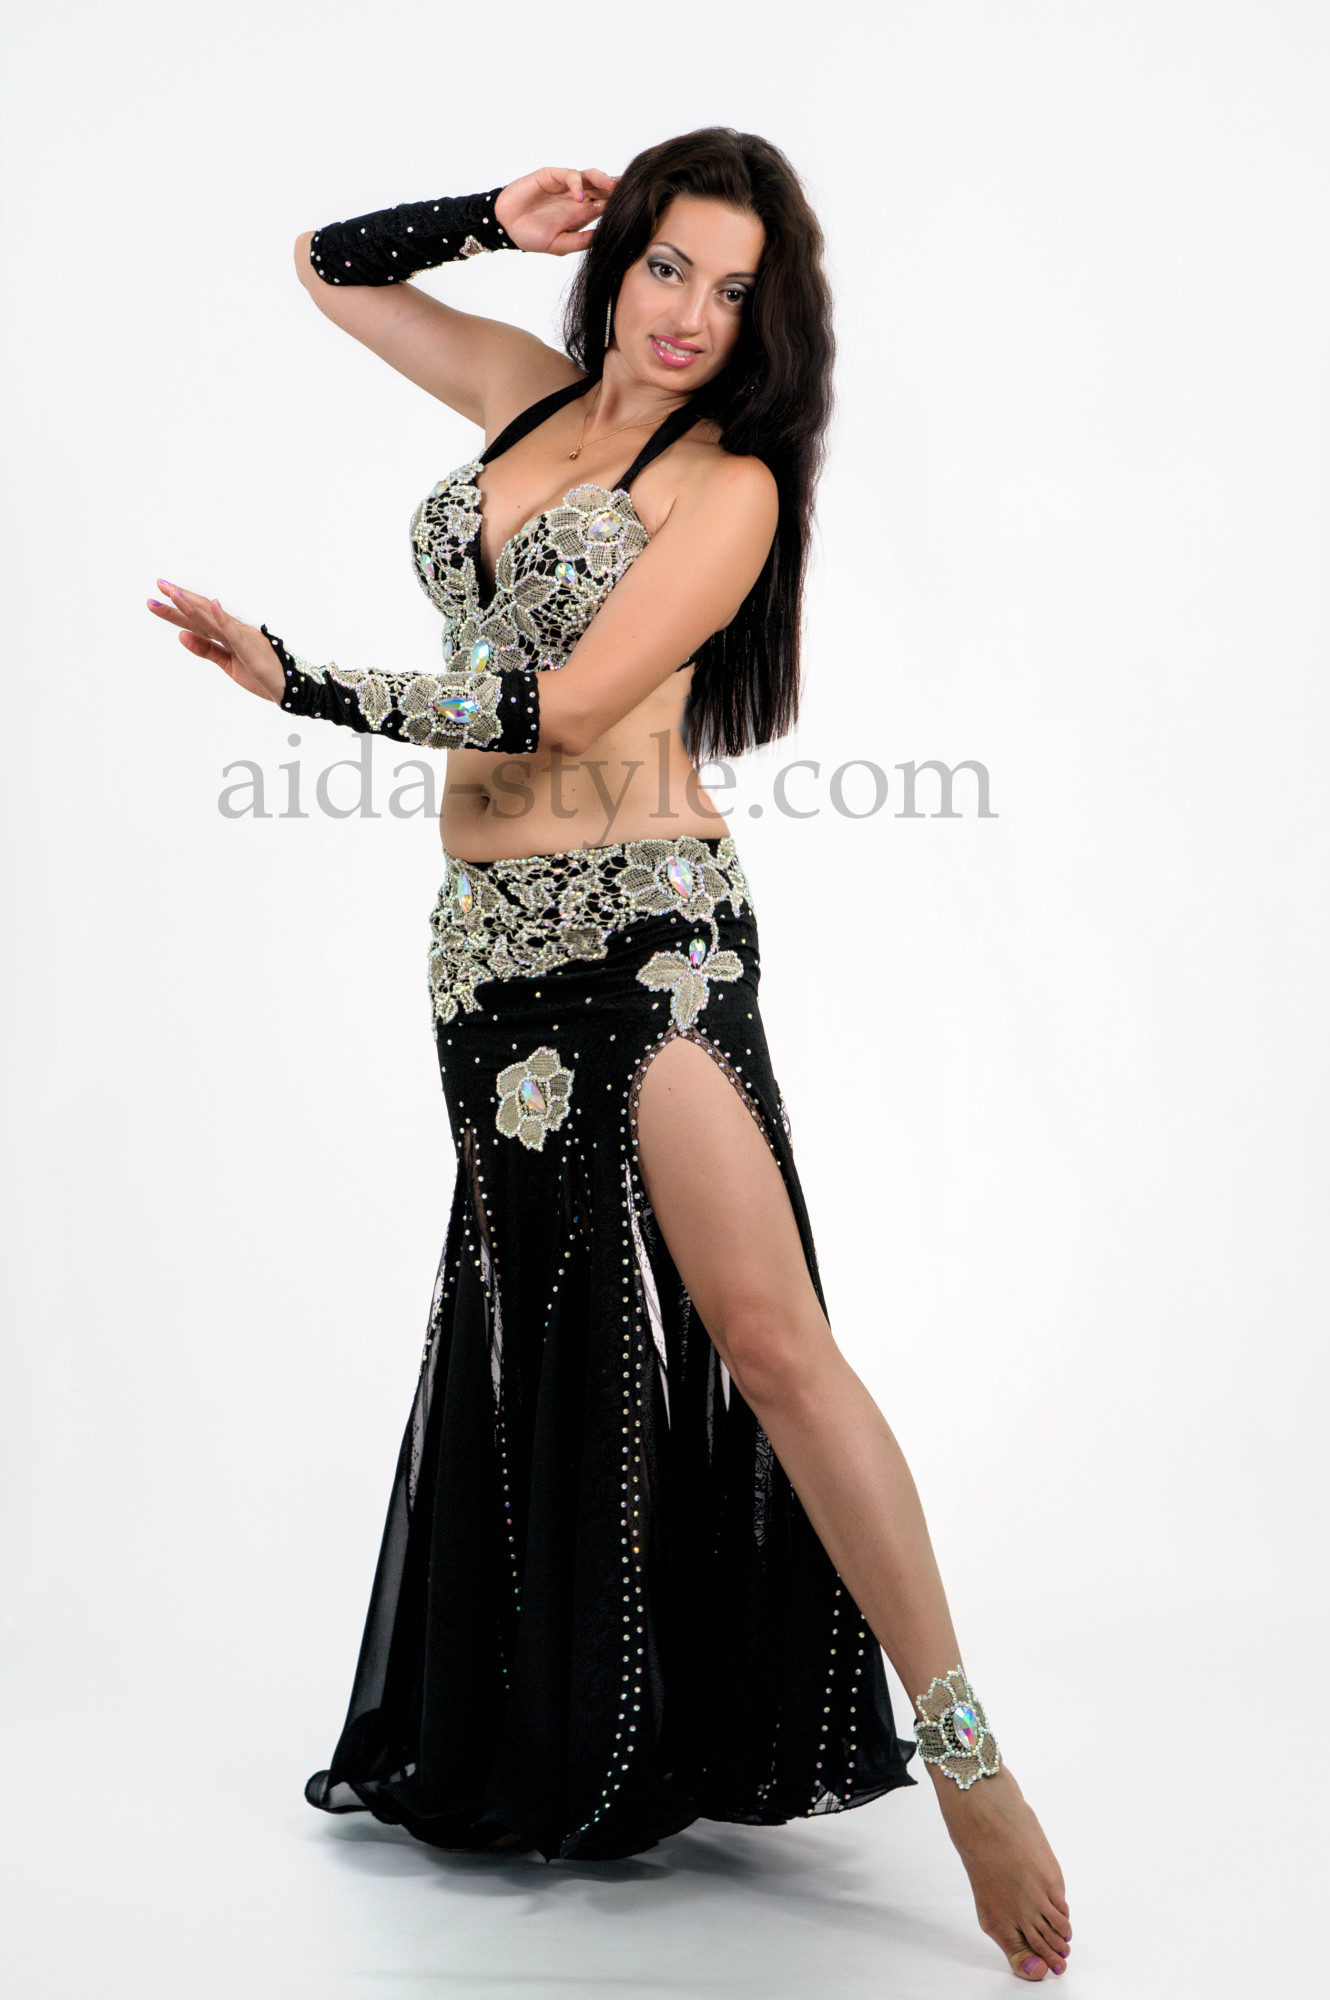 Beautiful and elegant professional belly dance costume for pros and amateurs. Black base is decorated with white lace patterns